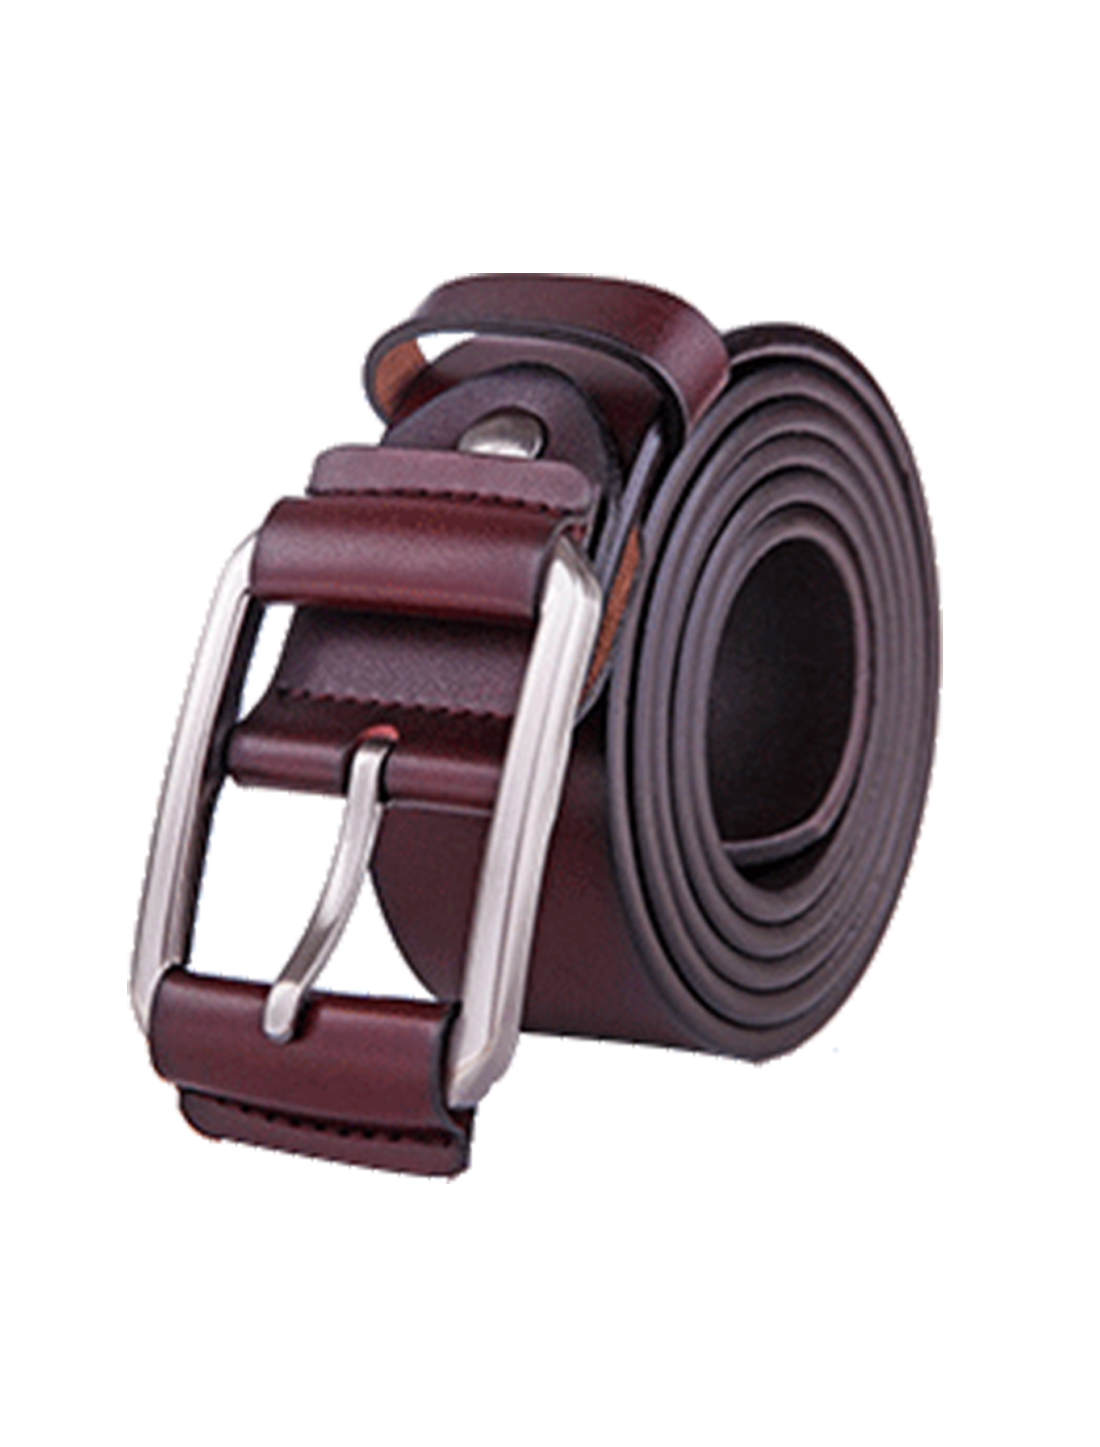 Men Solid Single Pin Buckle Dress Leather Belt 38mm Width 1 1/2 Brown 115cm